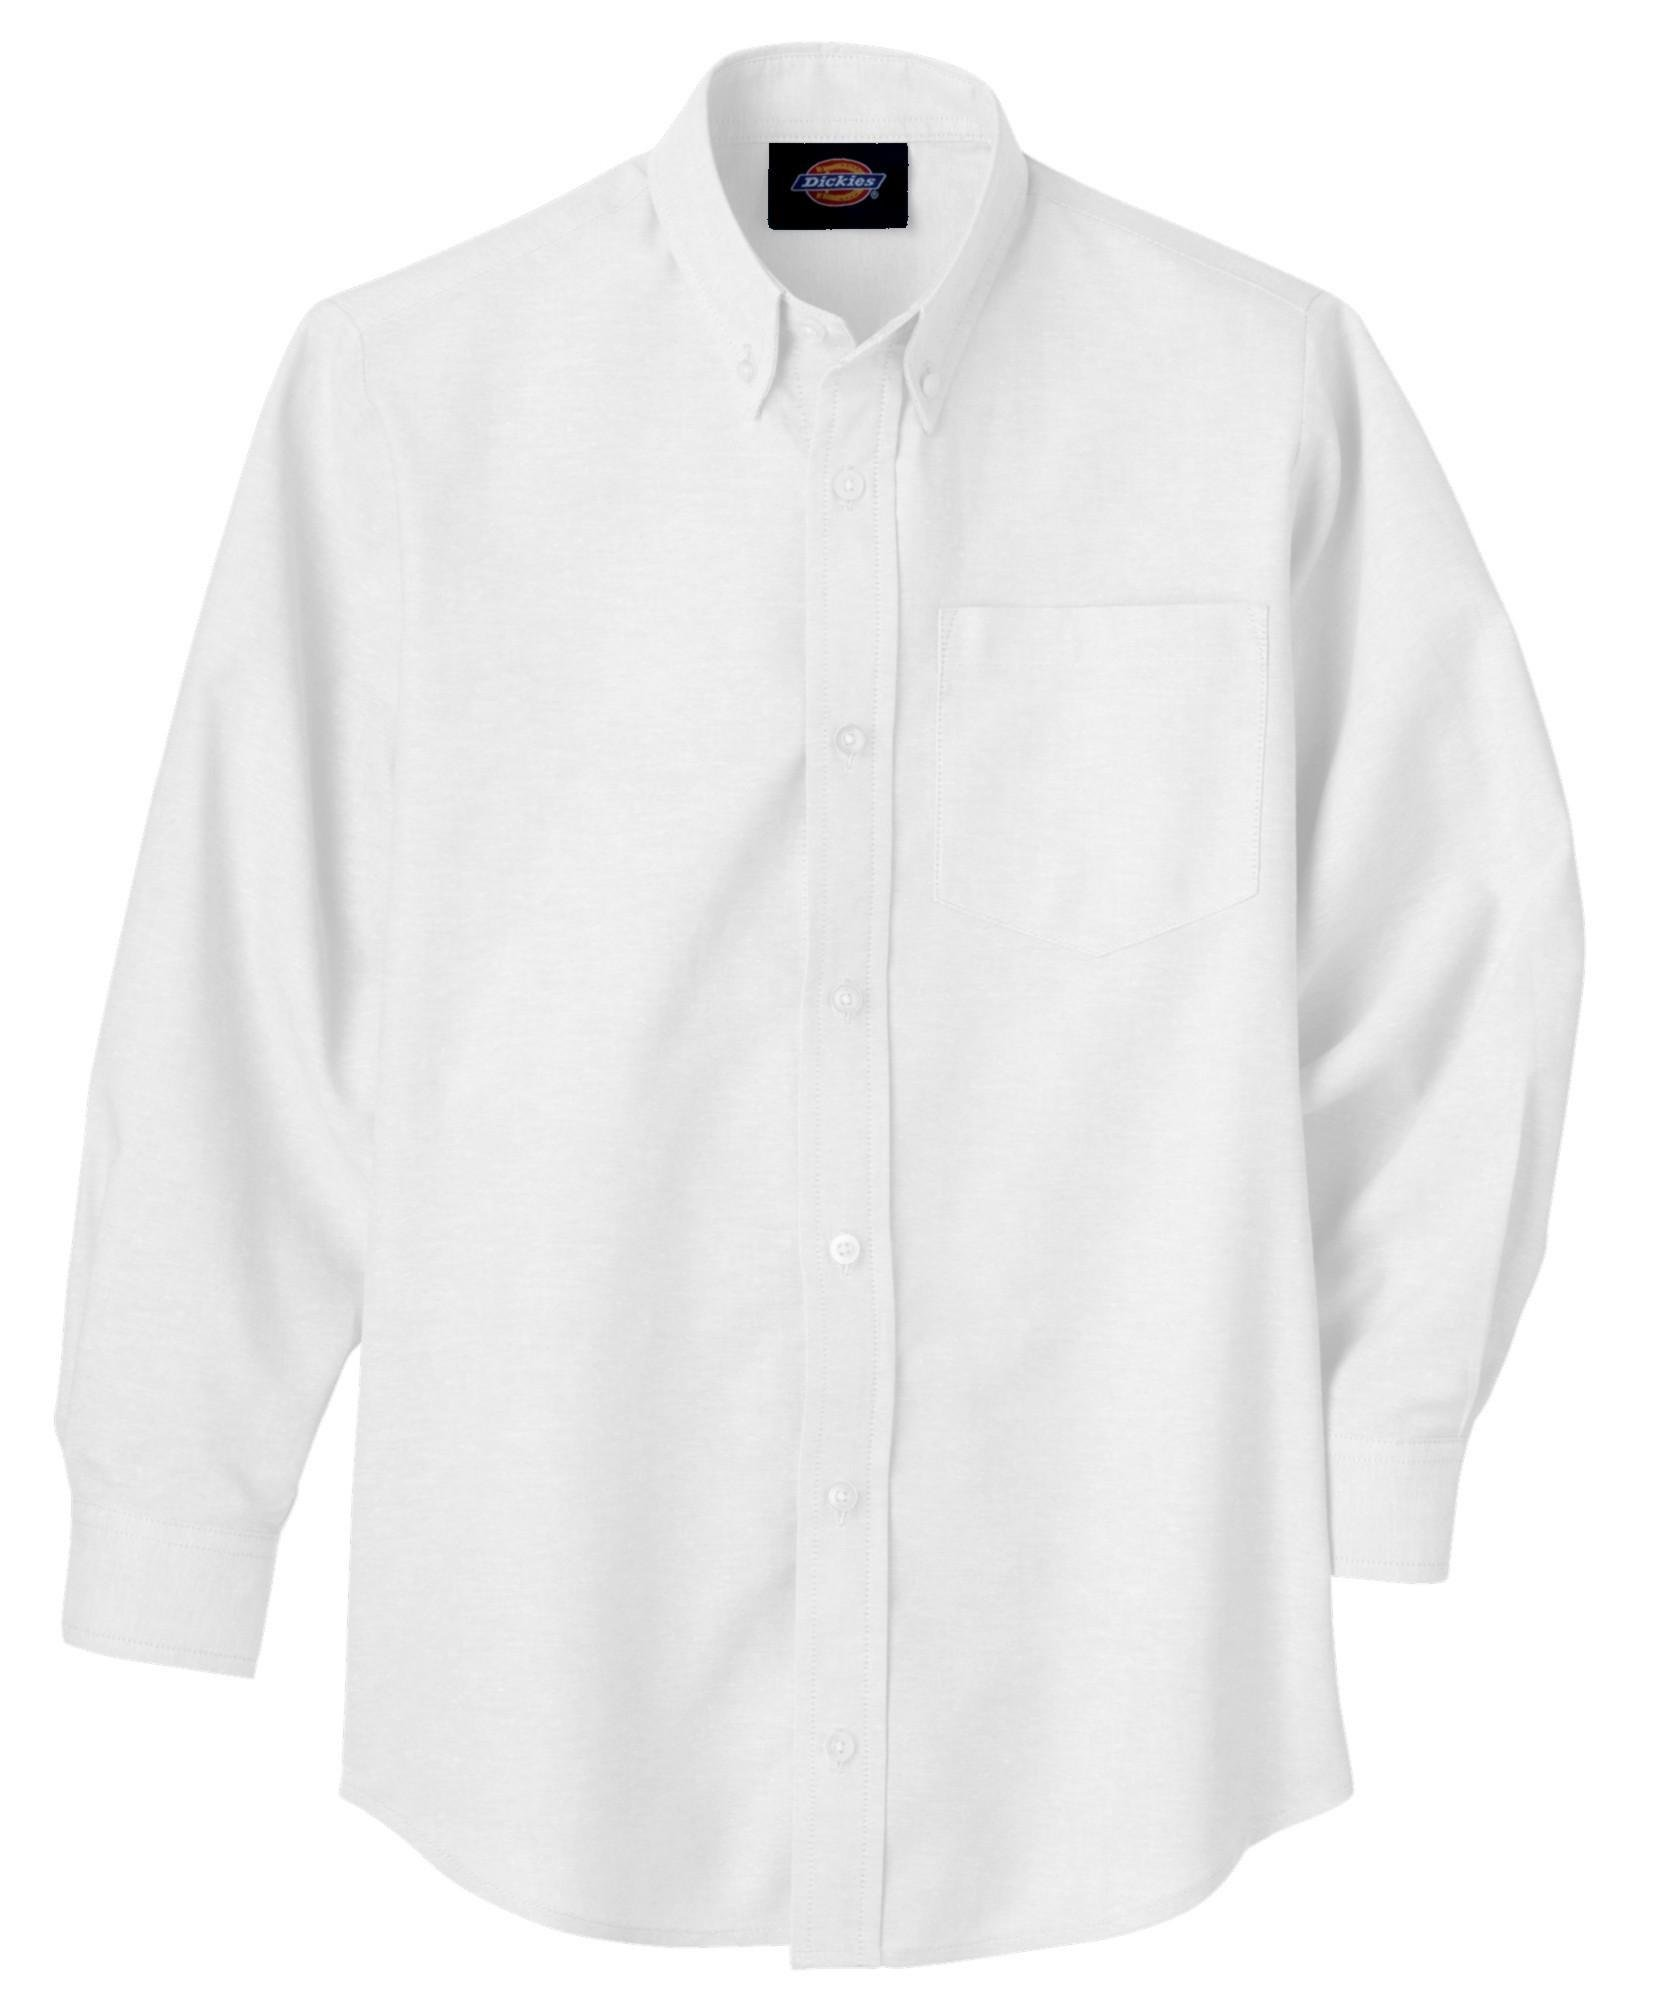 Dickies Big Boys' Long Sleeve Oxford Shirt, White, Medium (10/12)